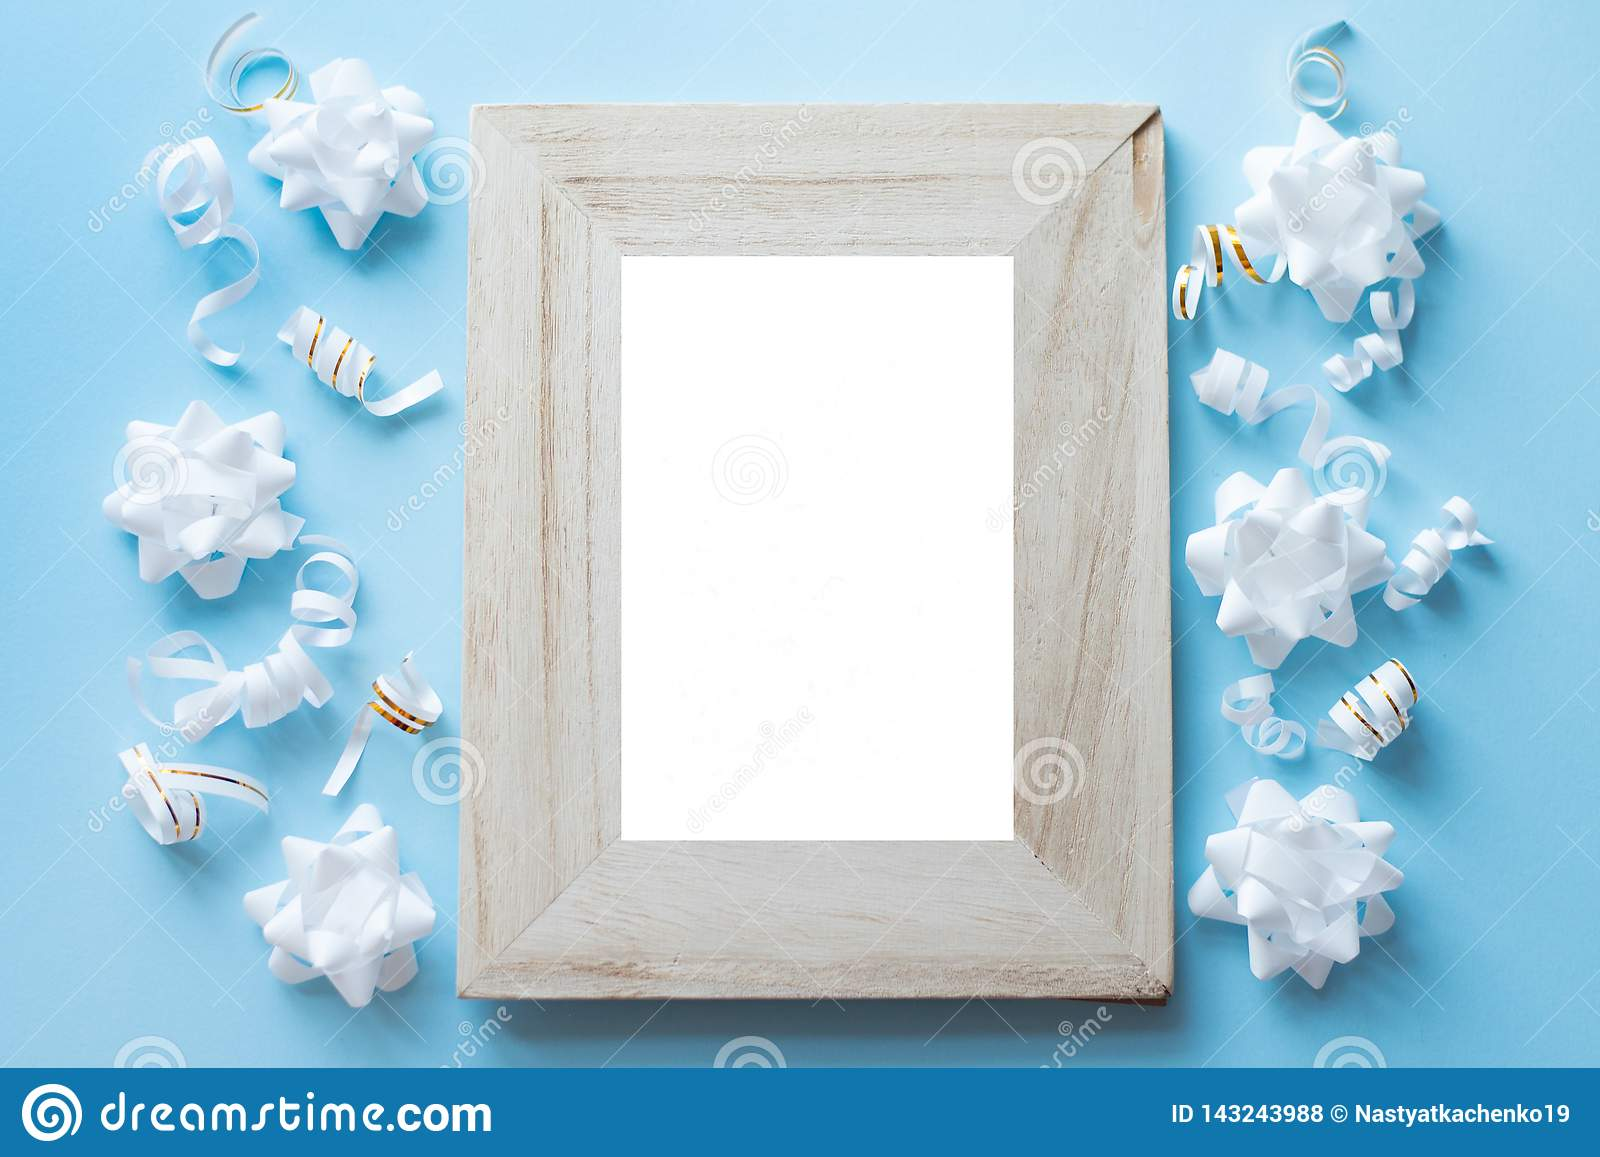 Empty Wood Photo Frame With Birthday Party Decorations On Blue Background Stock Photo Image Of Golden Life 143243988